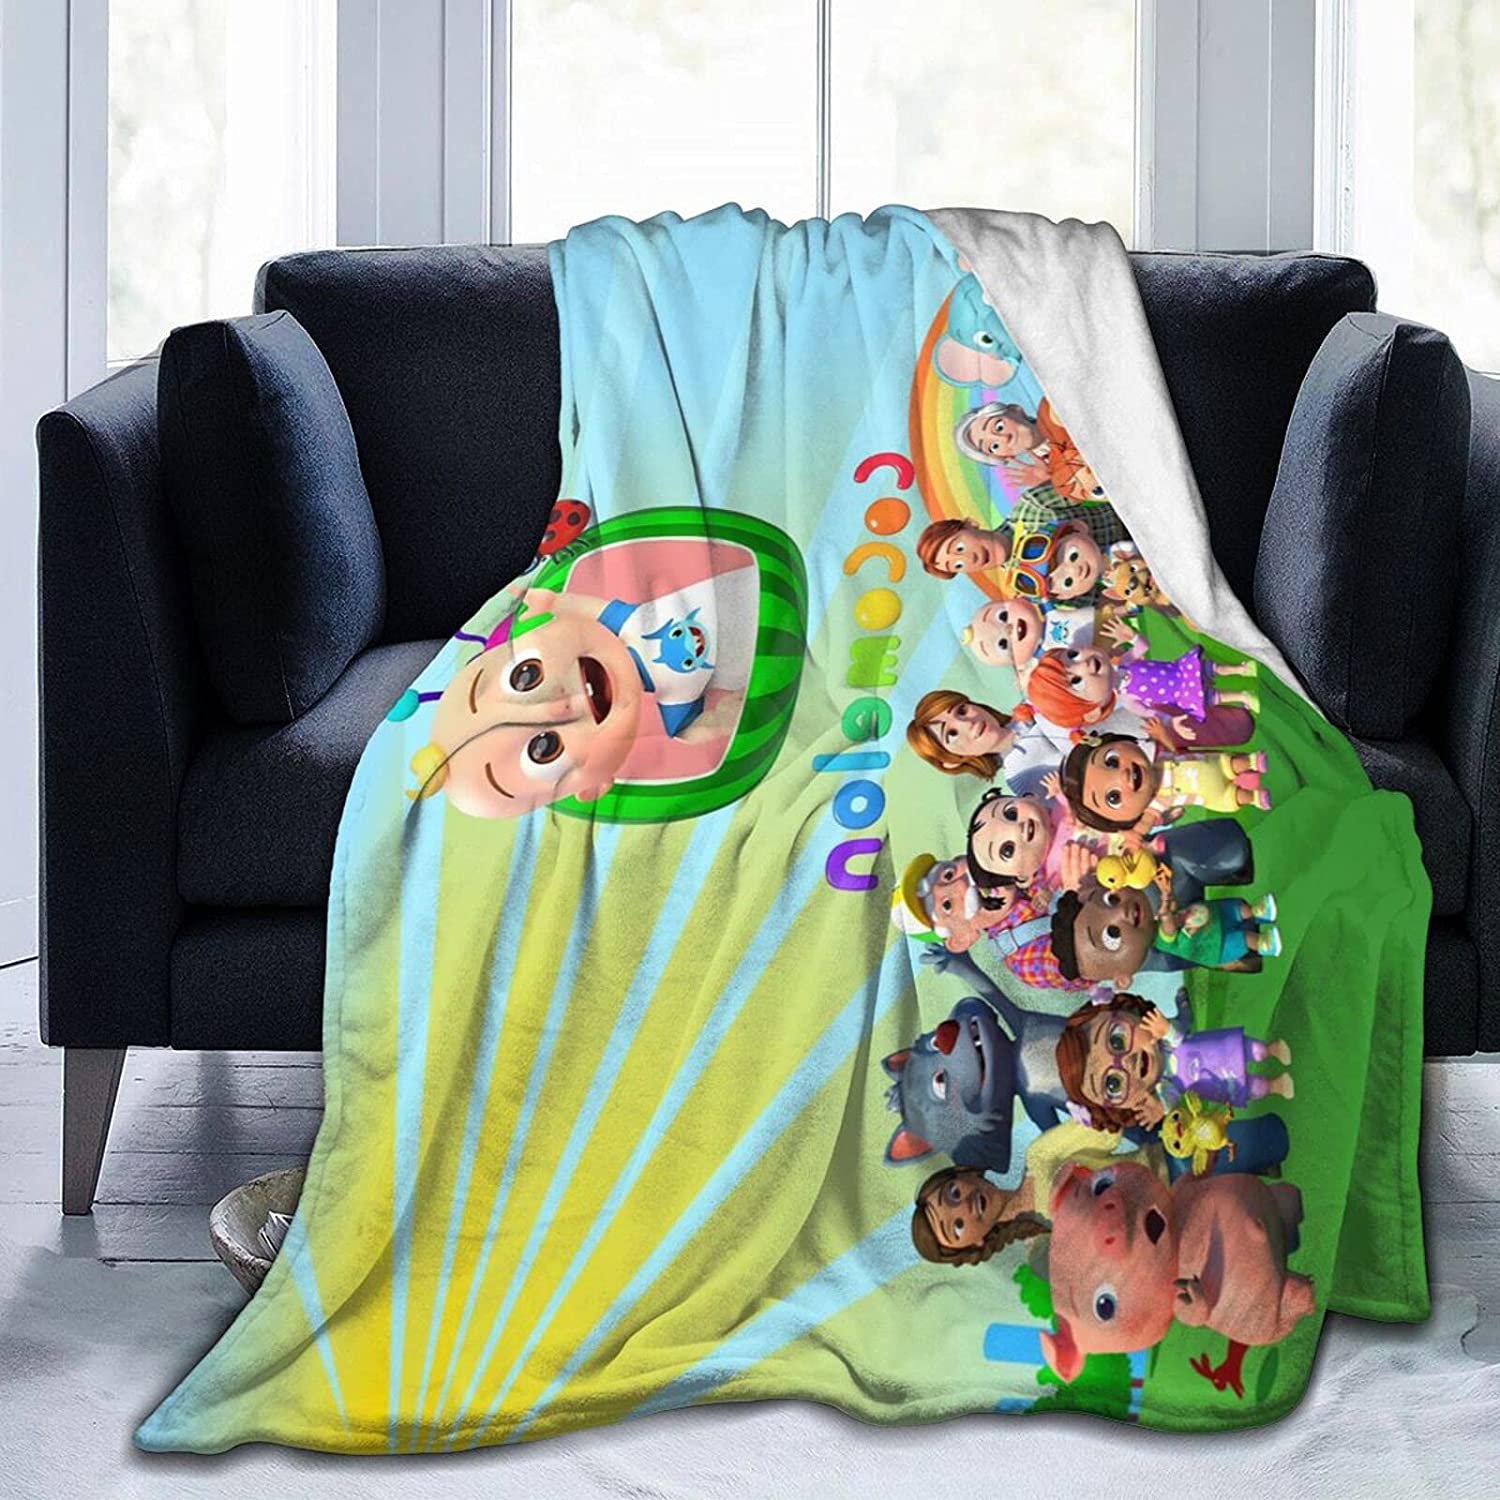 Baby Blanket Throw Flannel Fleece Luxury To Ultra-Soft Fluffy Free Shipping Cheap Bargain Gift for